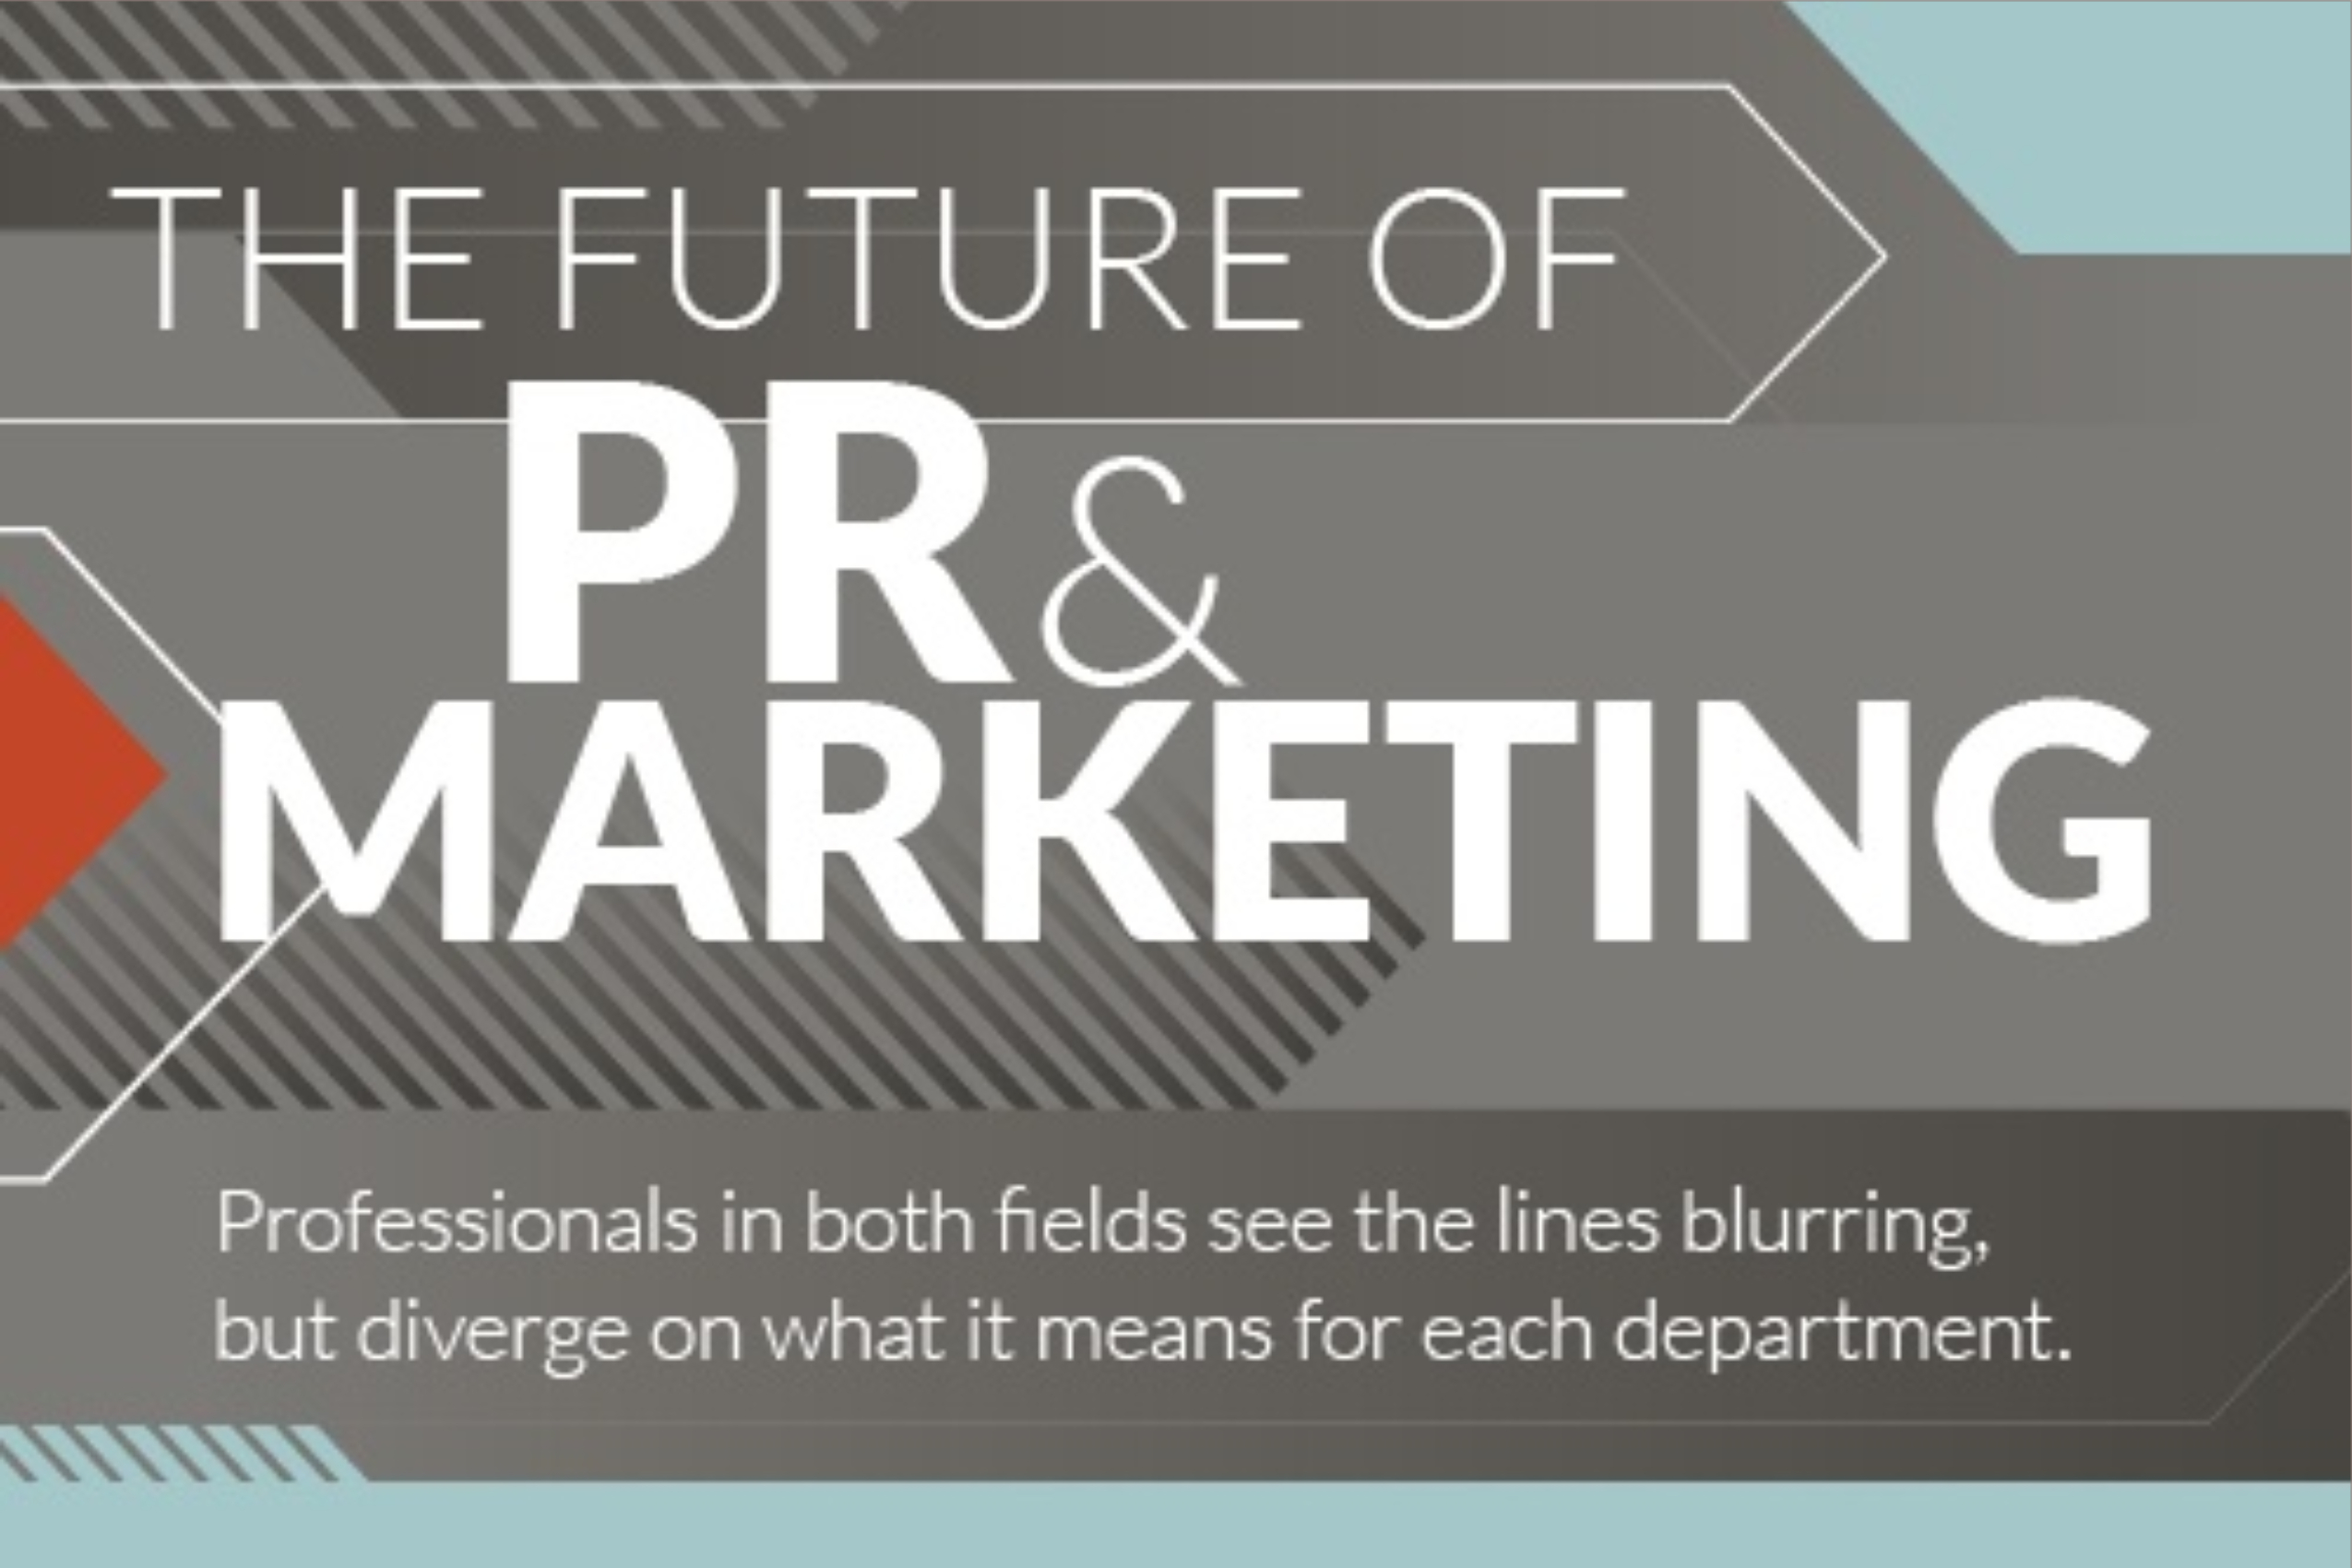 How Are Marketing & PR Changing_ (infographic)